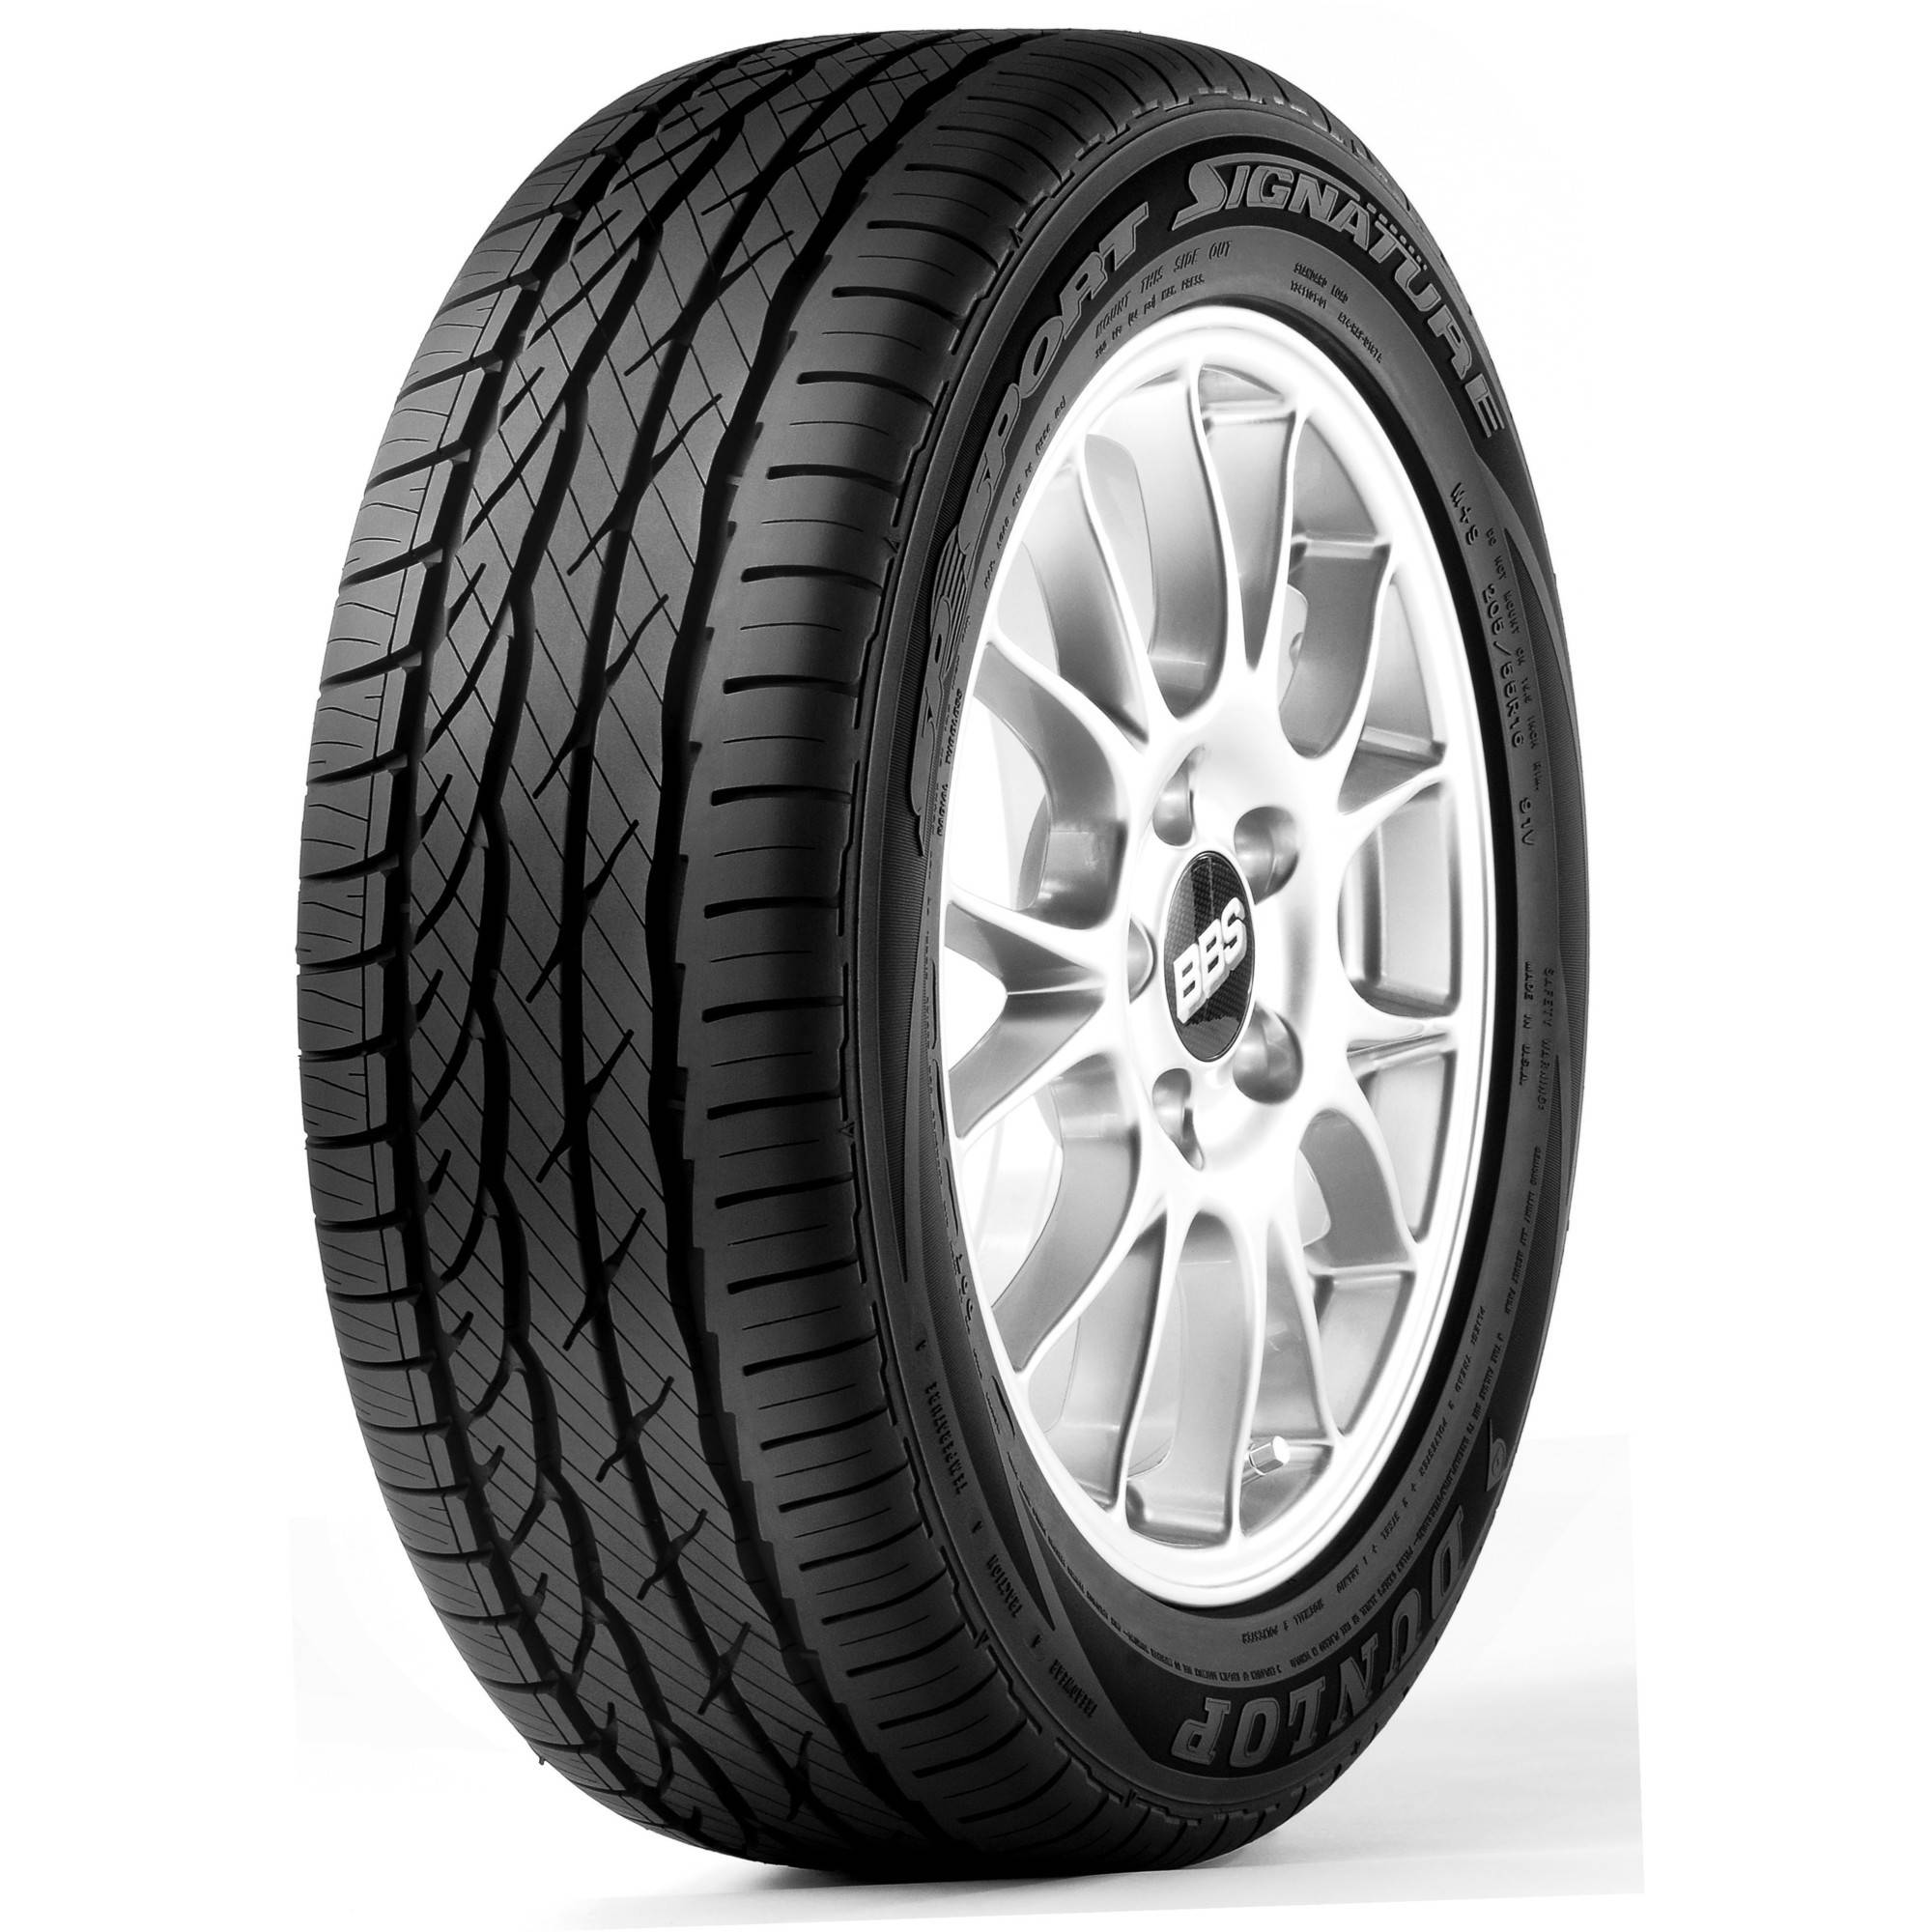 Dunlop SP Sport Signature Tire 245/45R18 100W